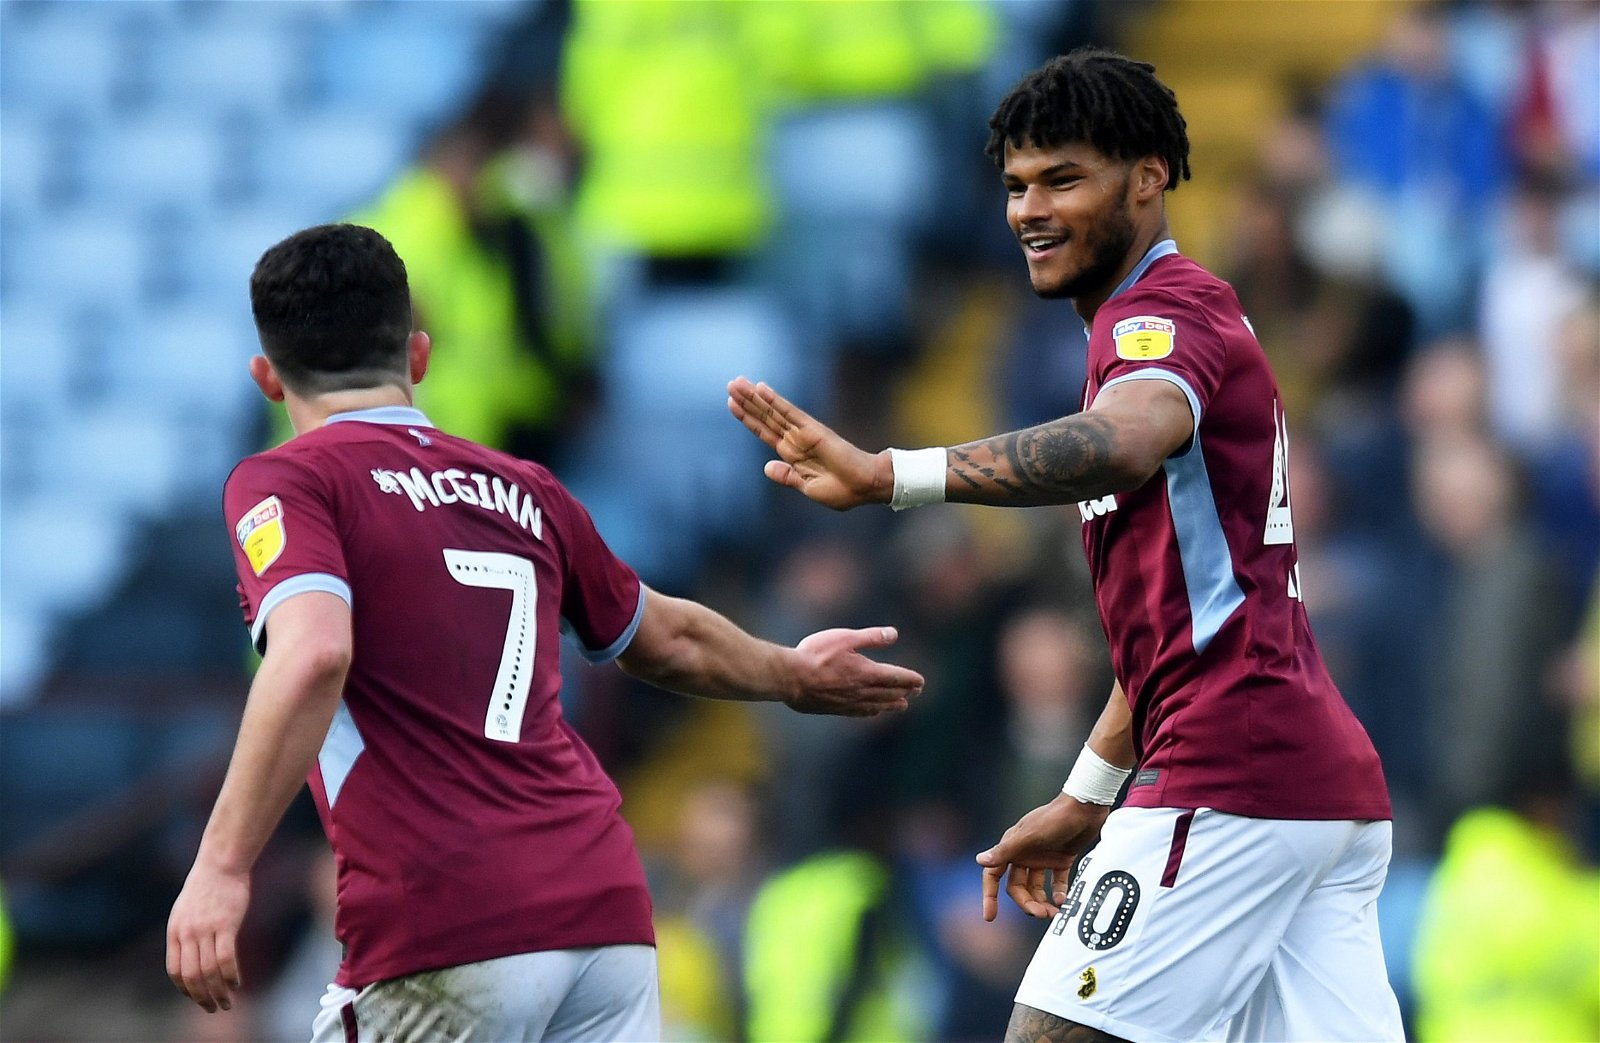 Mings McGinn - Genius decision: Winning John Terry-inspired transfer race ensured Villa's promotion - opinion